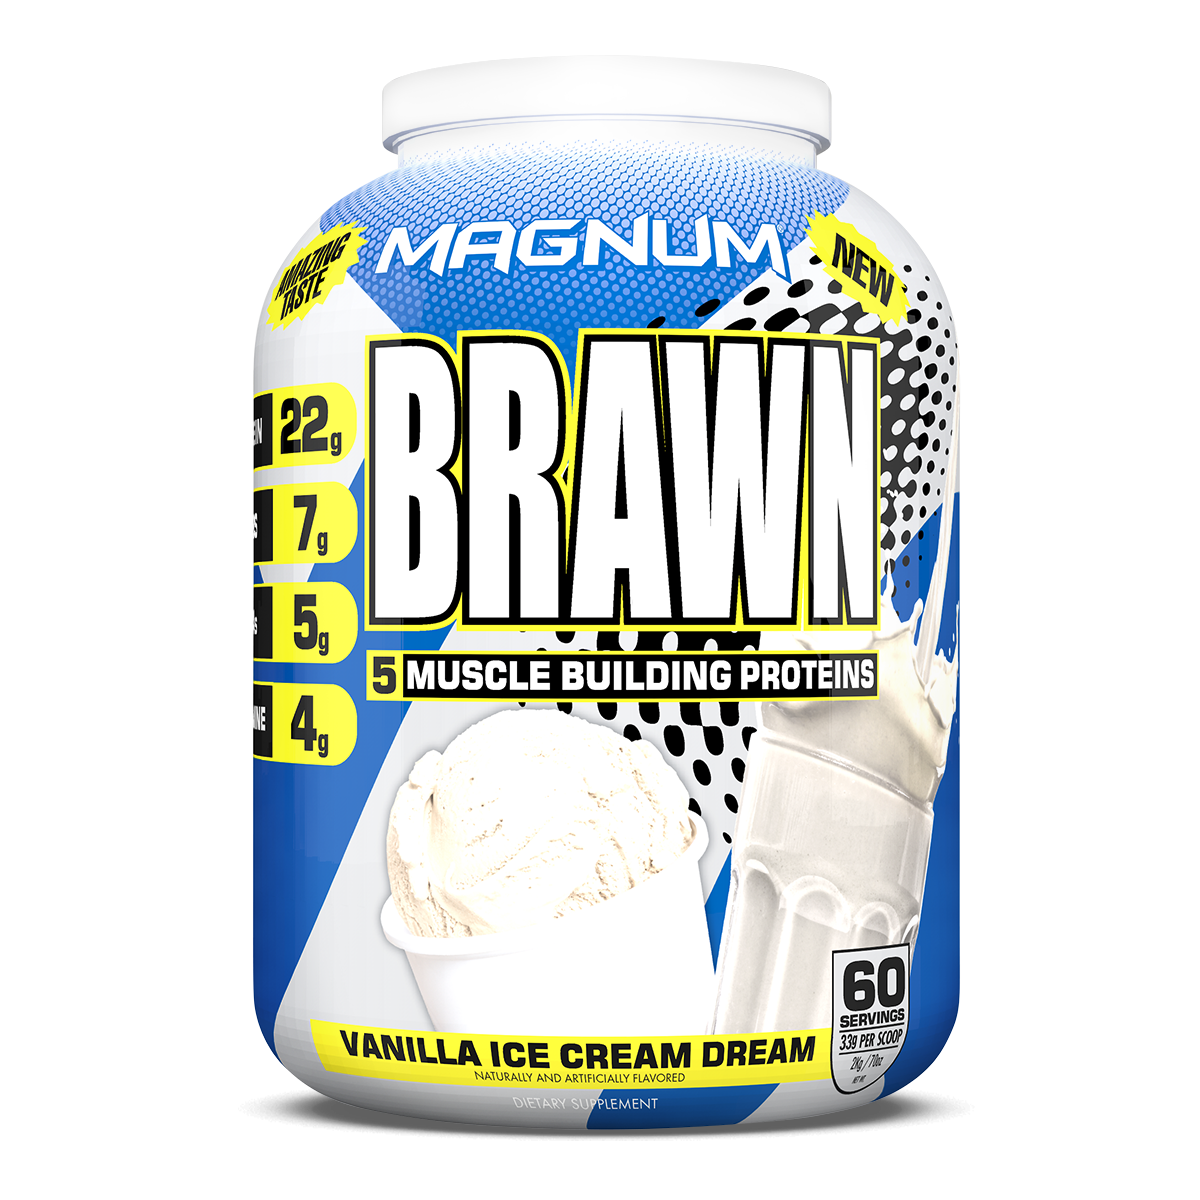 Magnum Brawn - Available in: Chocolate, VanillaMagnum Brawn was formulated with the best sources of high quality proteins, resulting in a shake that mixes smoothly and tastes incredible.• Every ingredient is Pharmaceutical Grade• It's formulated with 5 different forms of complex carbs to assist recovery and ensure your protein is being used to build lean muscle.• Easy on the stomach due to it's low lactose levels.• Added MCT oil to contribute to an optimal metabolic rate and better energy post workout.• Magnum Brawn is effective, affordable, and exactly what you need to boost your strength, build more muscle and recover much faster!